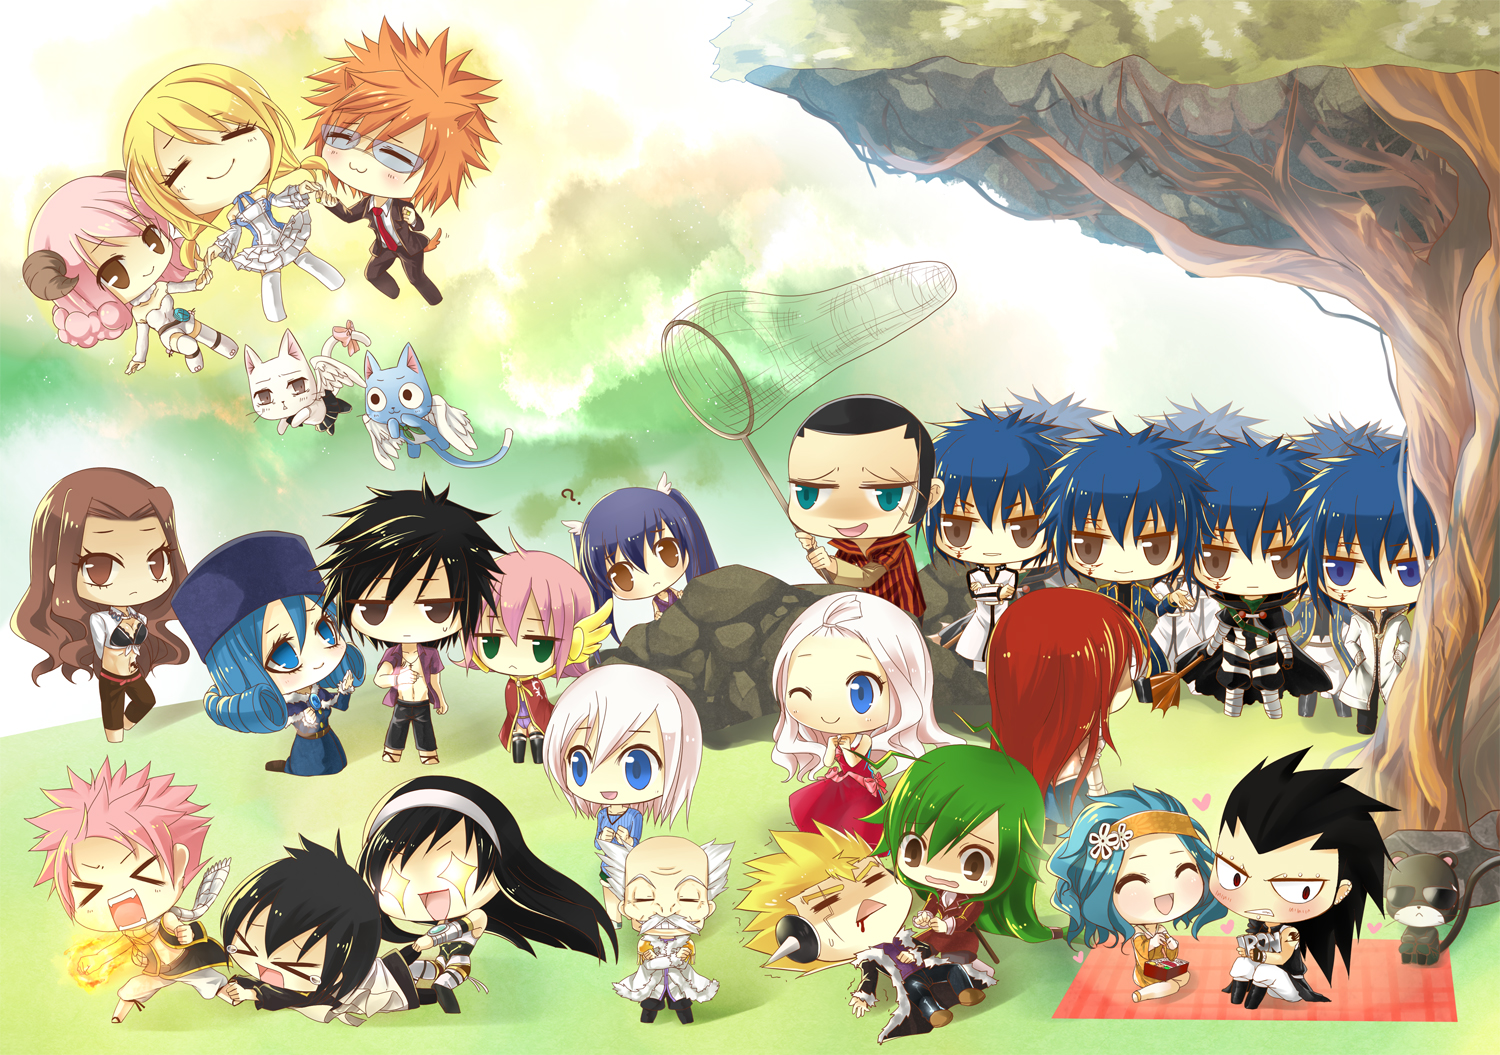 Fairy Tail images fairy tail chibi HD wallpaper and background photos 1500x1055